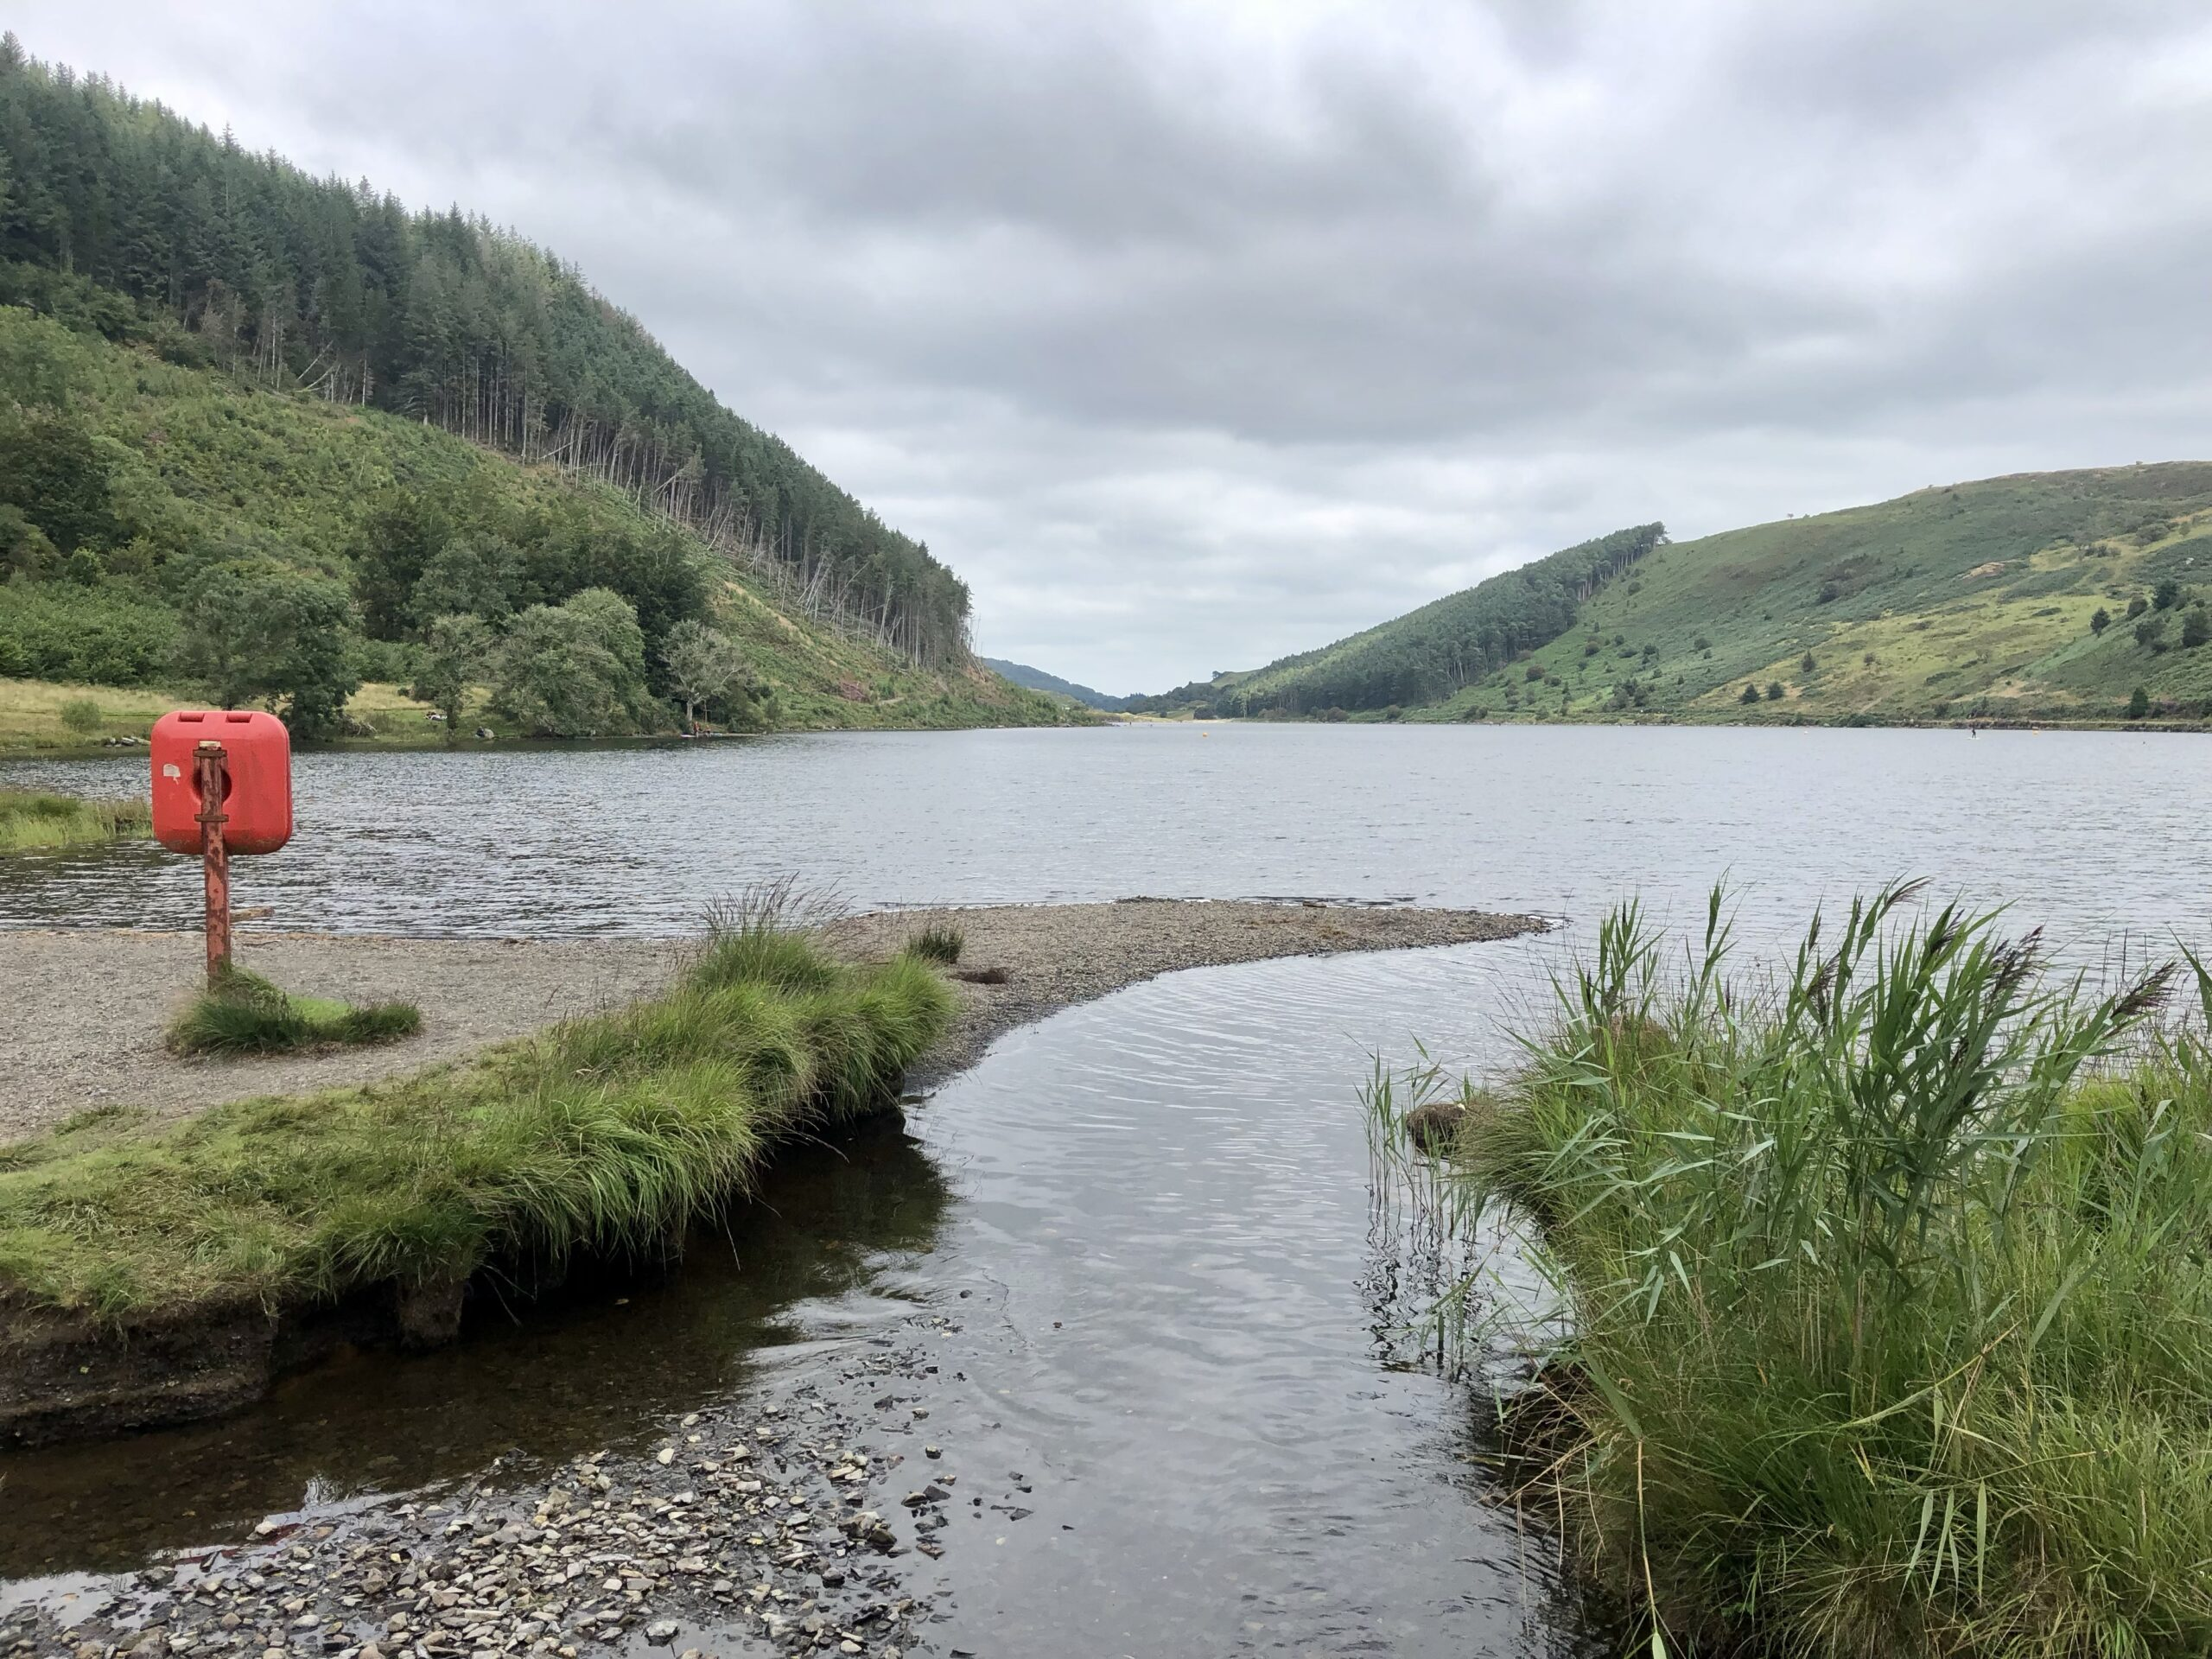 A view of Llyn Geirionydd from the shore along the length of the lake